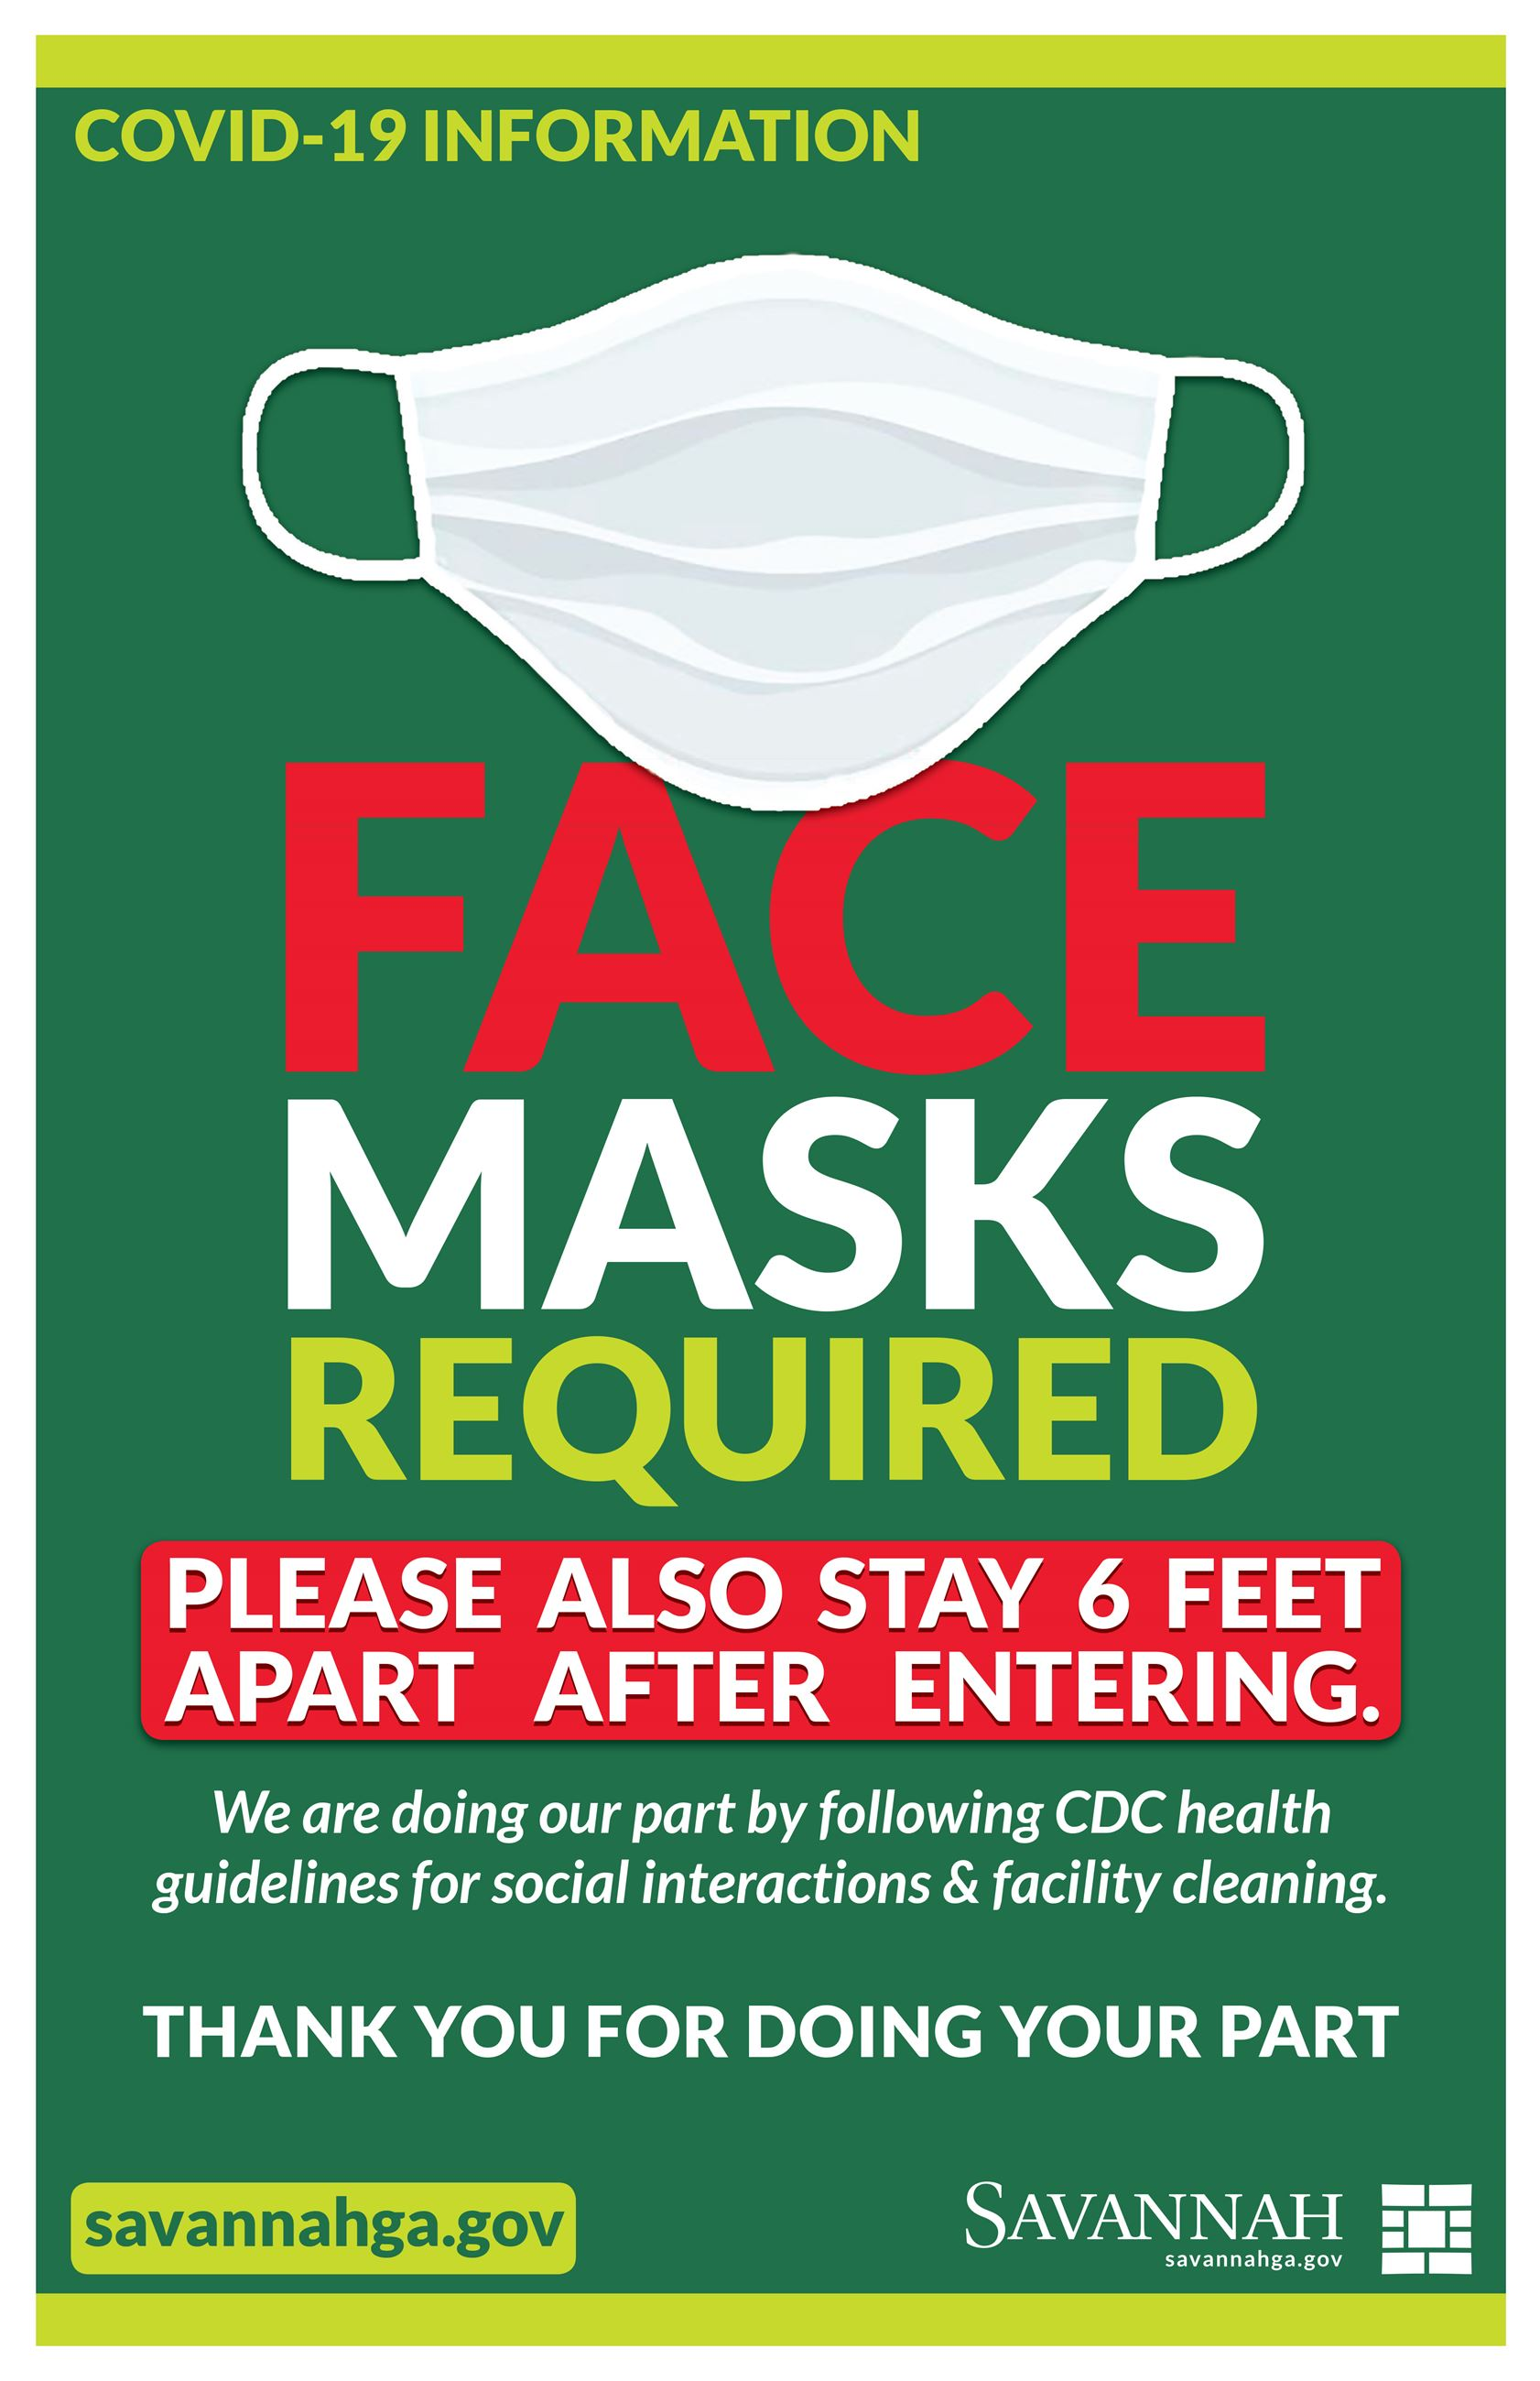 Face Masks required poster 07142020